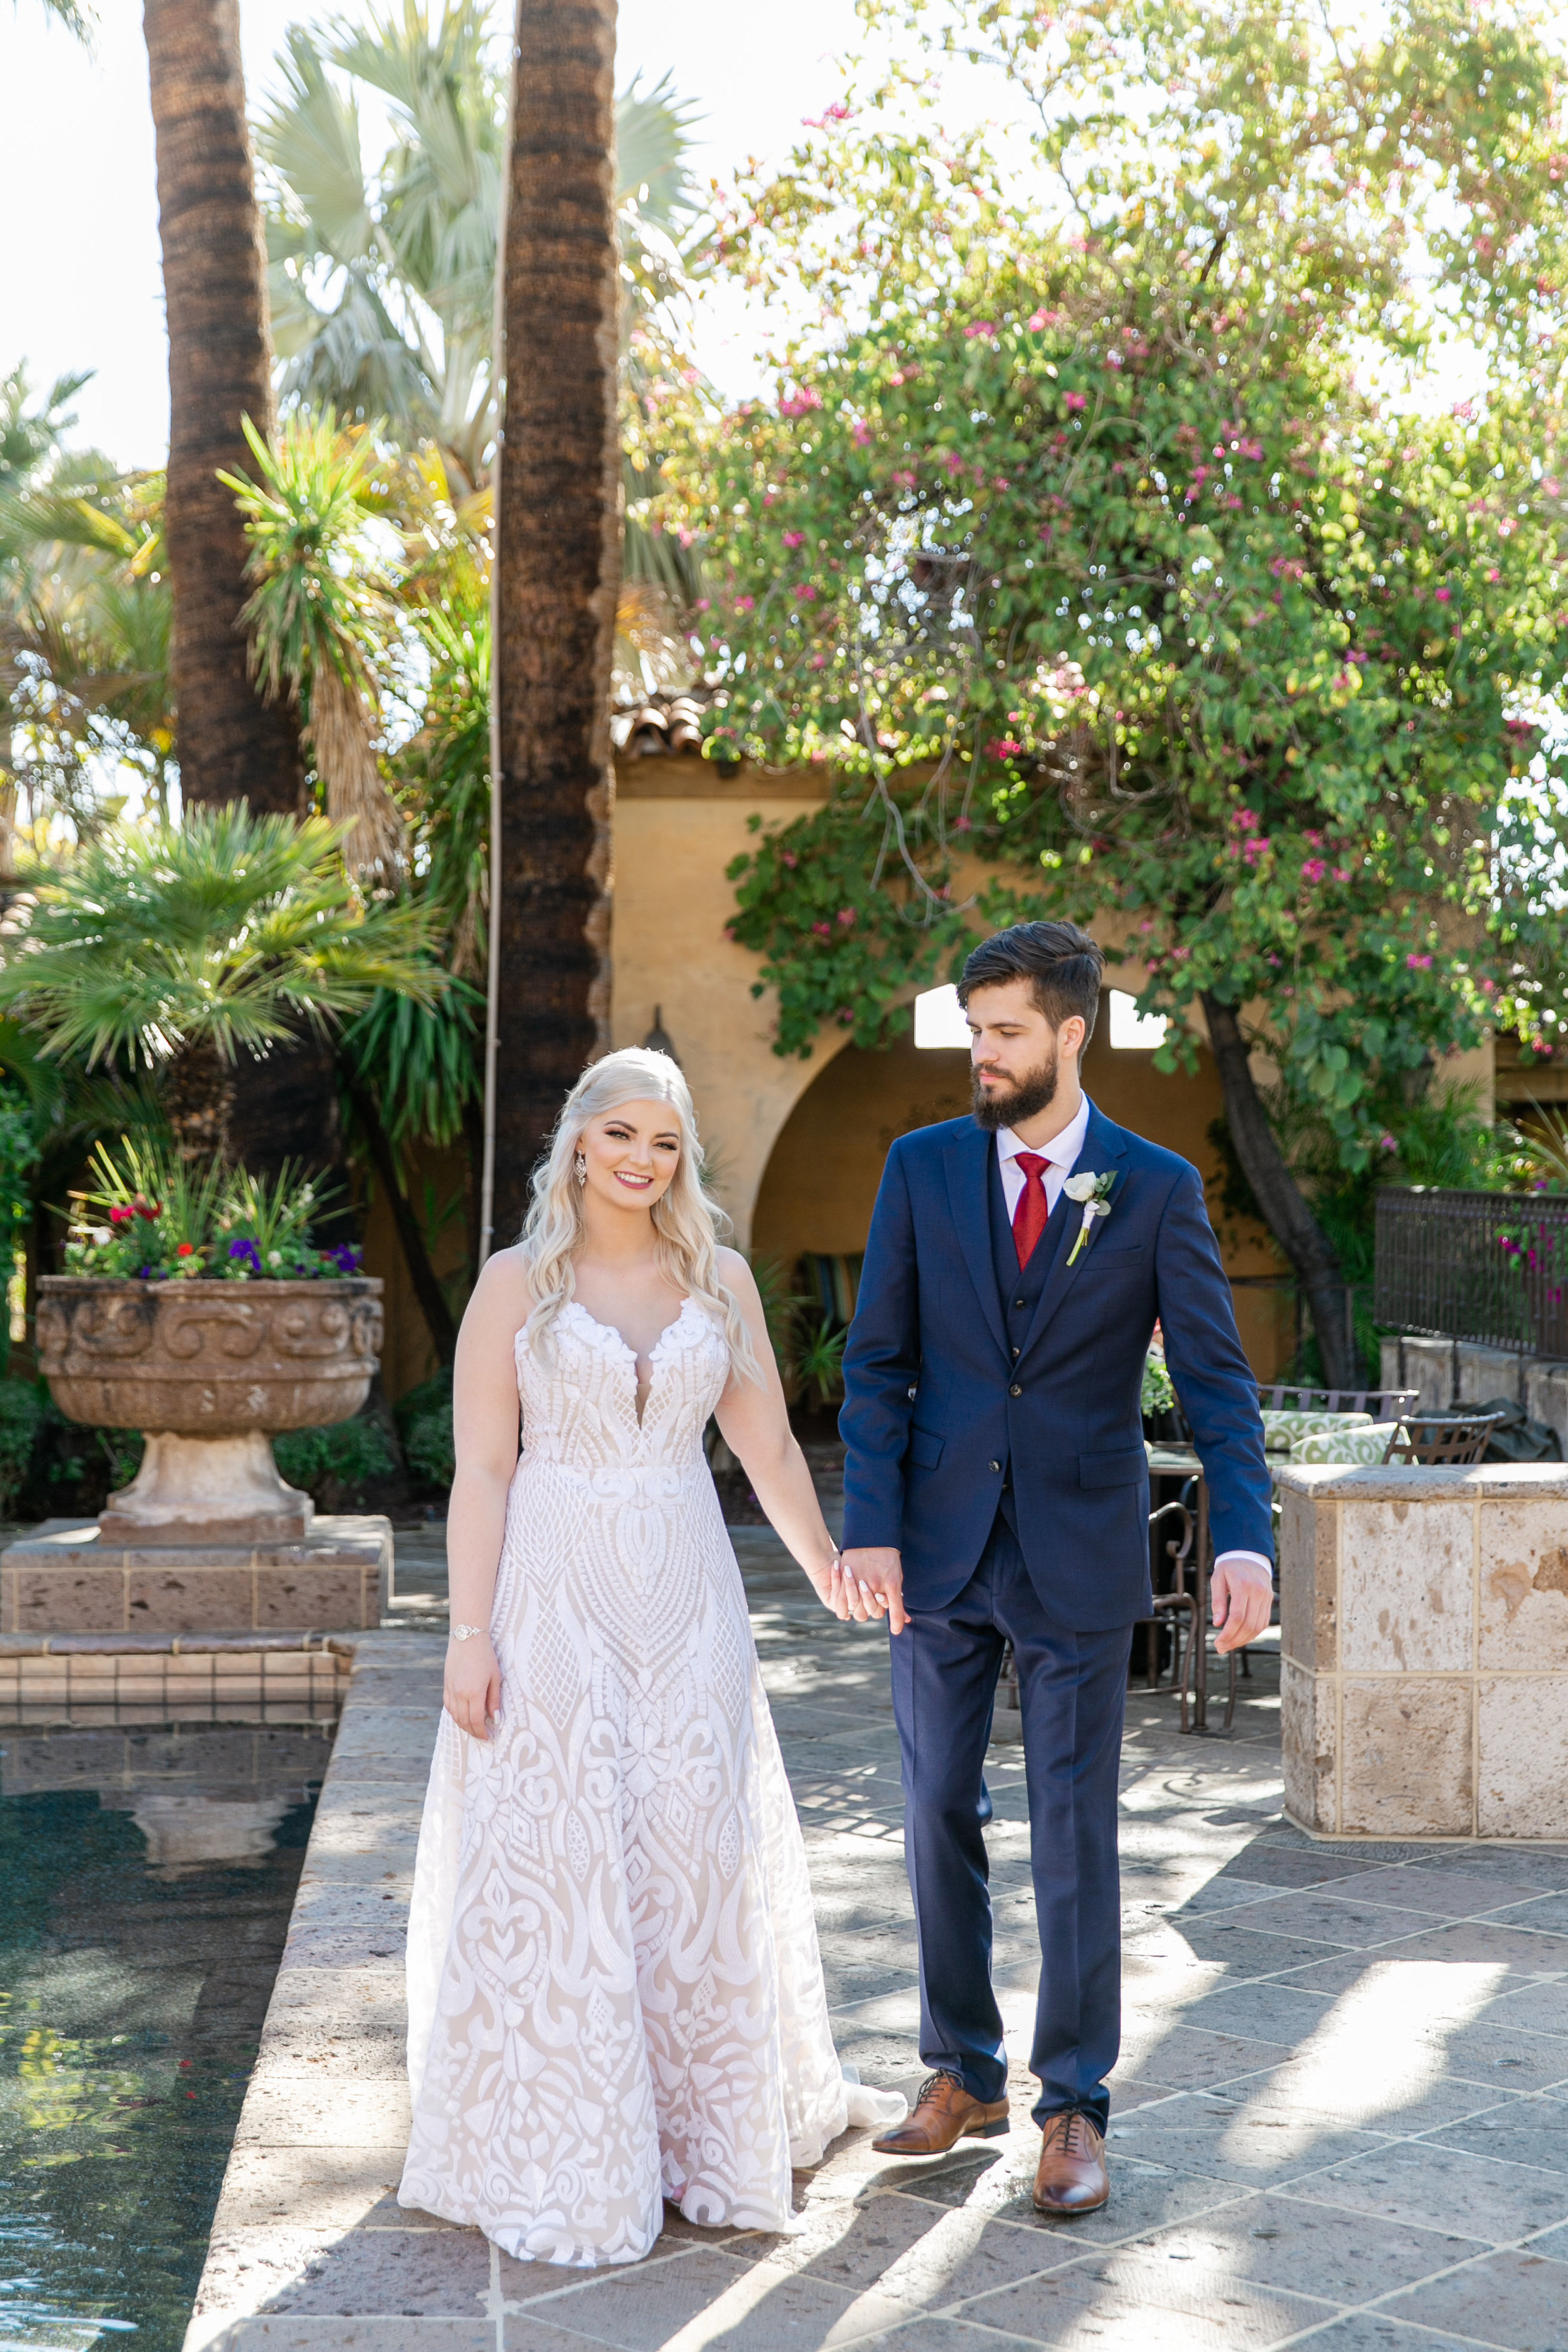 Karlie Colleen Photography - The Royal Palms Wedding - Some Like It Classic - Alex & Sam-130